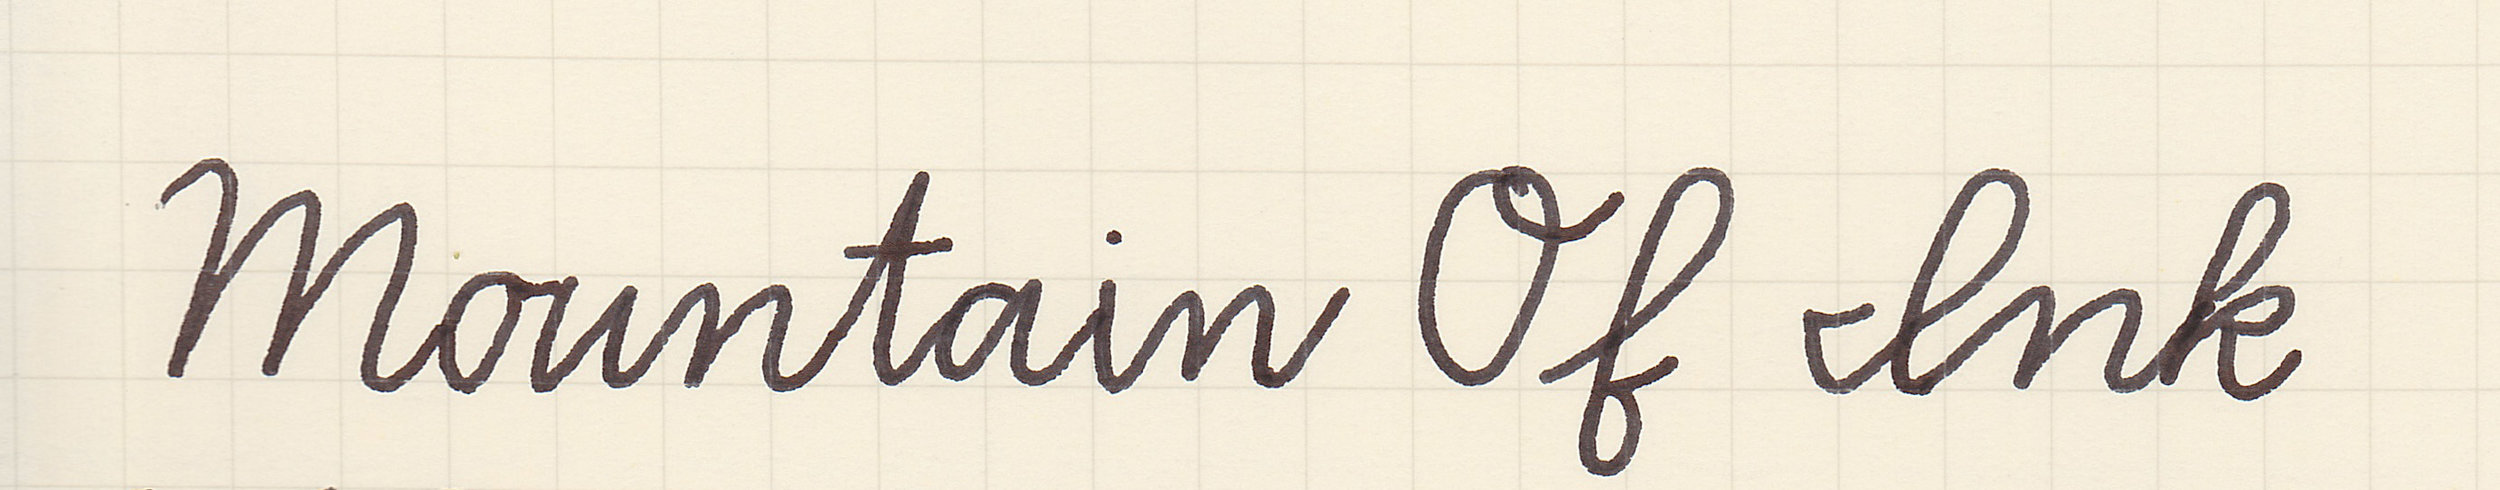 Zaner-Bloser cursive, written with a medium nib